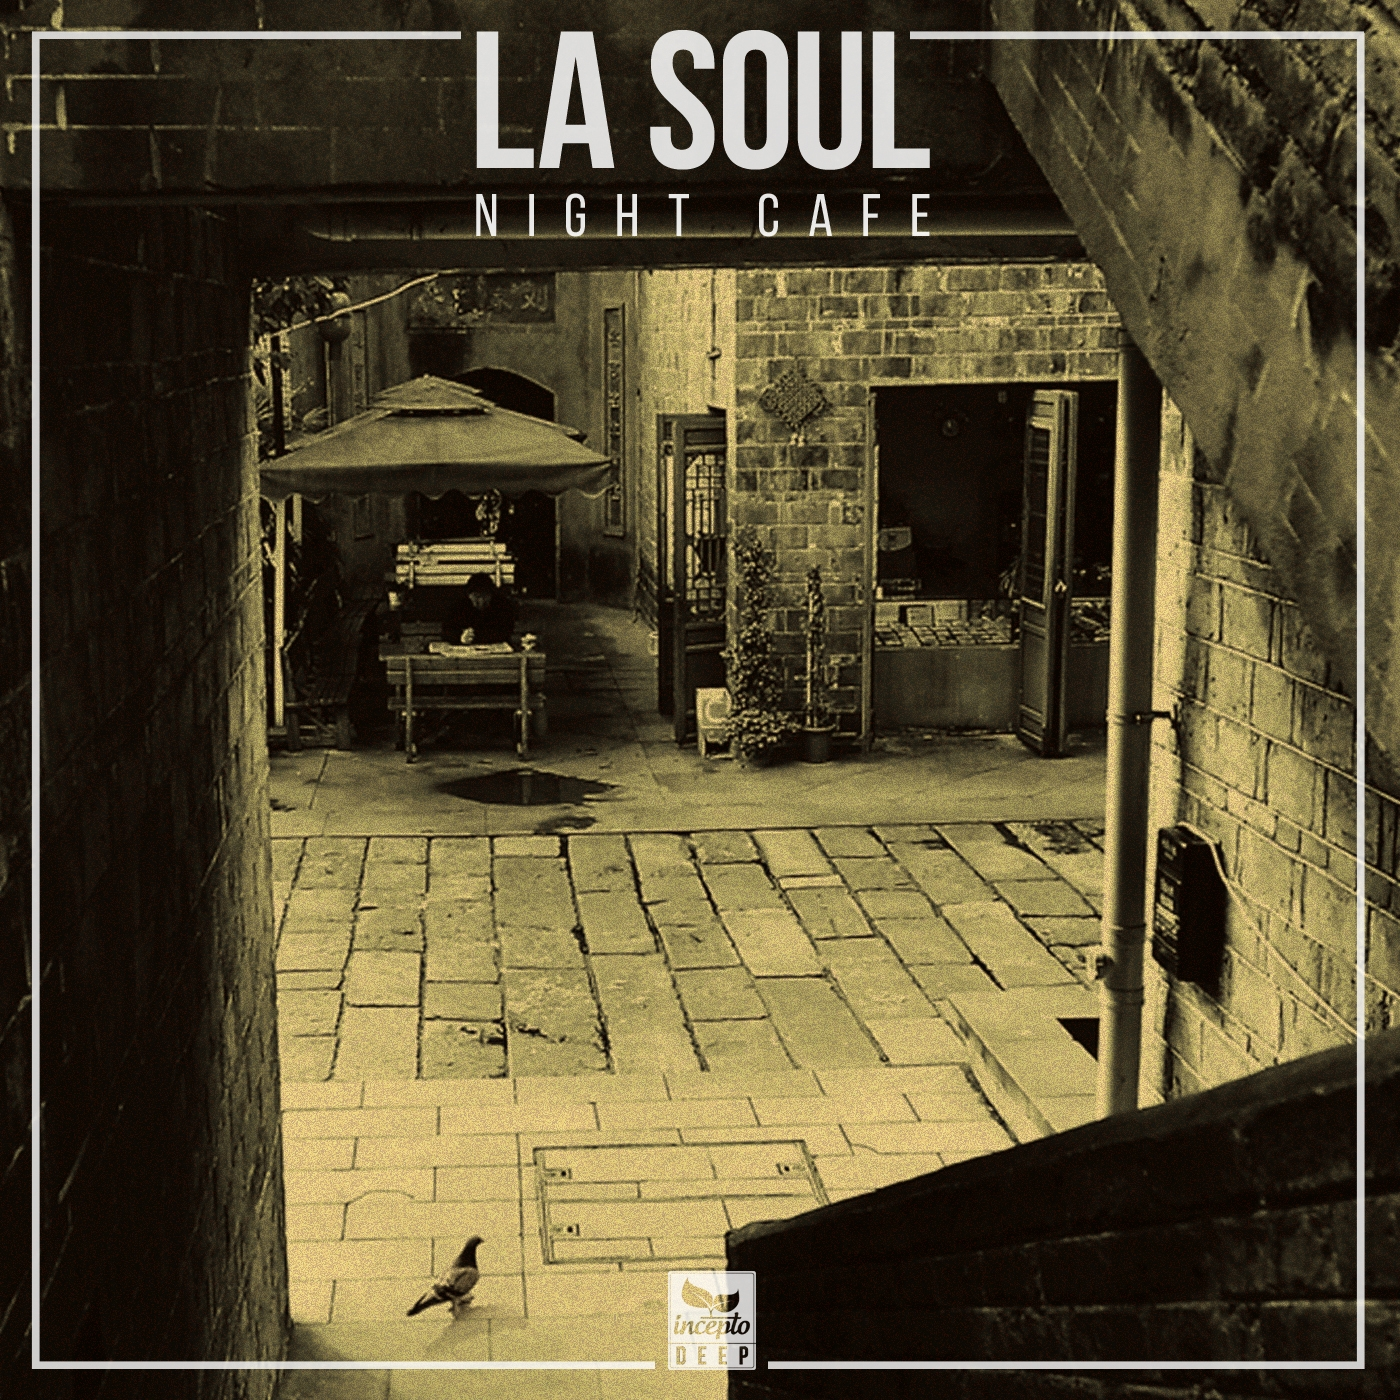 La Soul - Night Cafe (Original Mix)